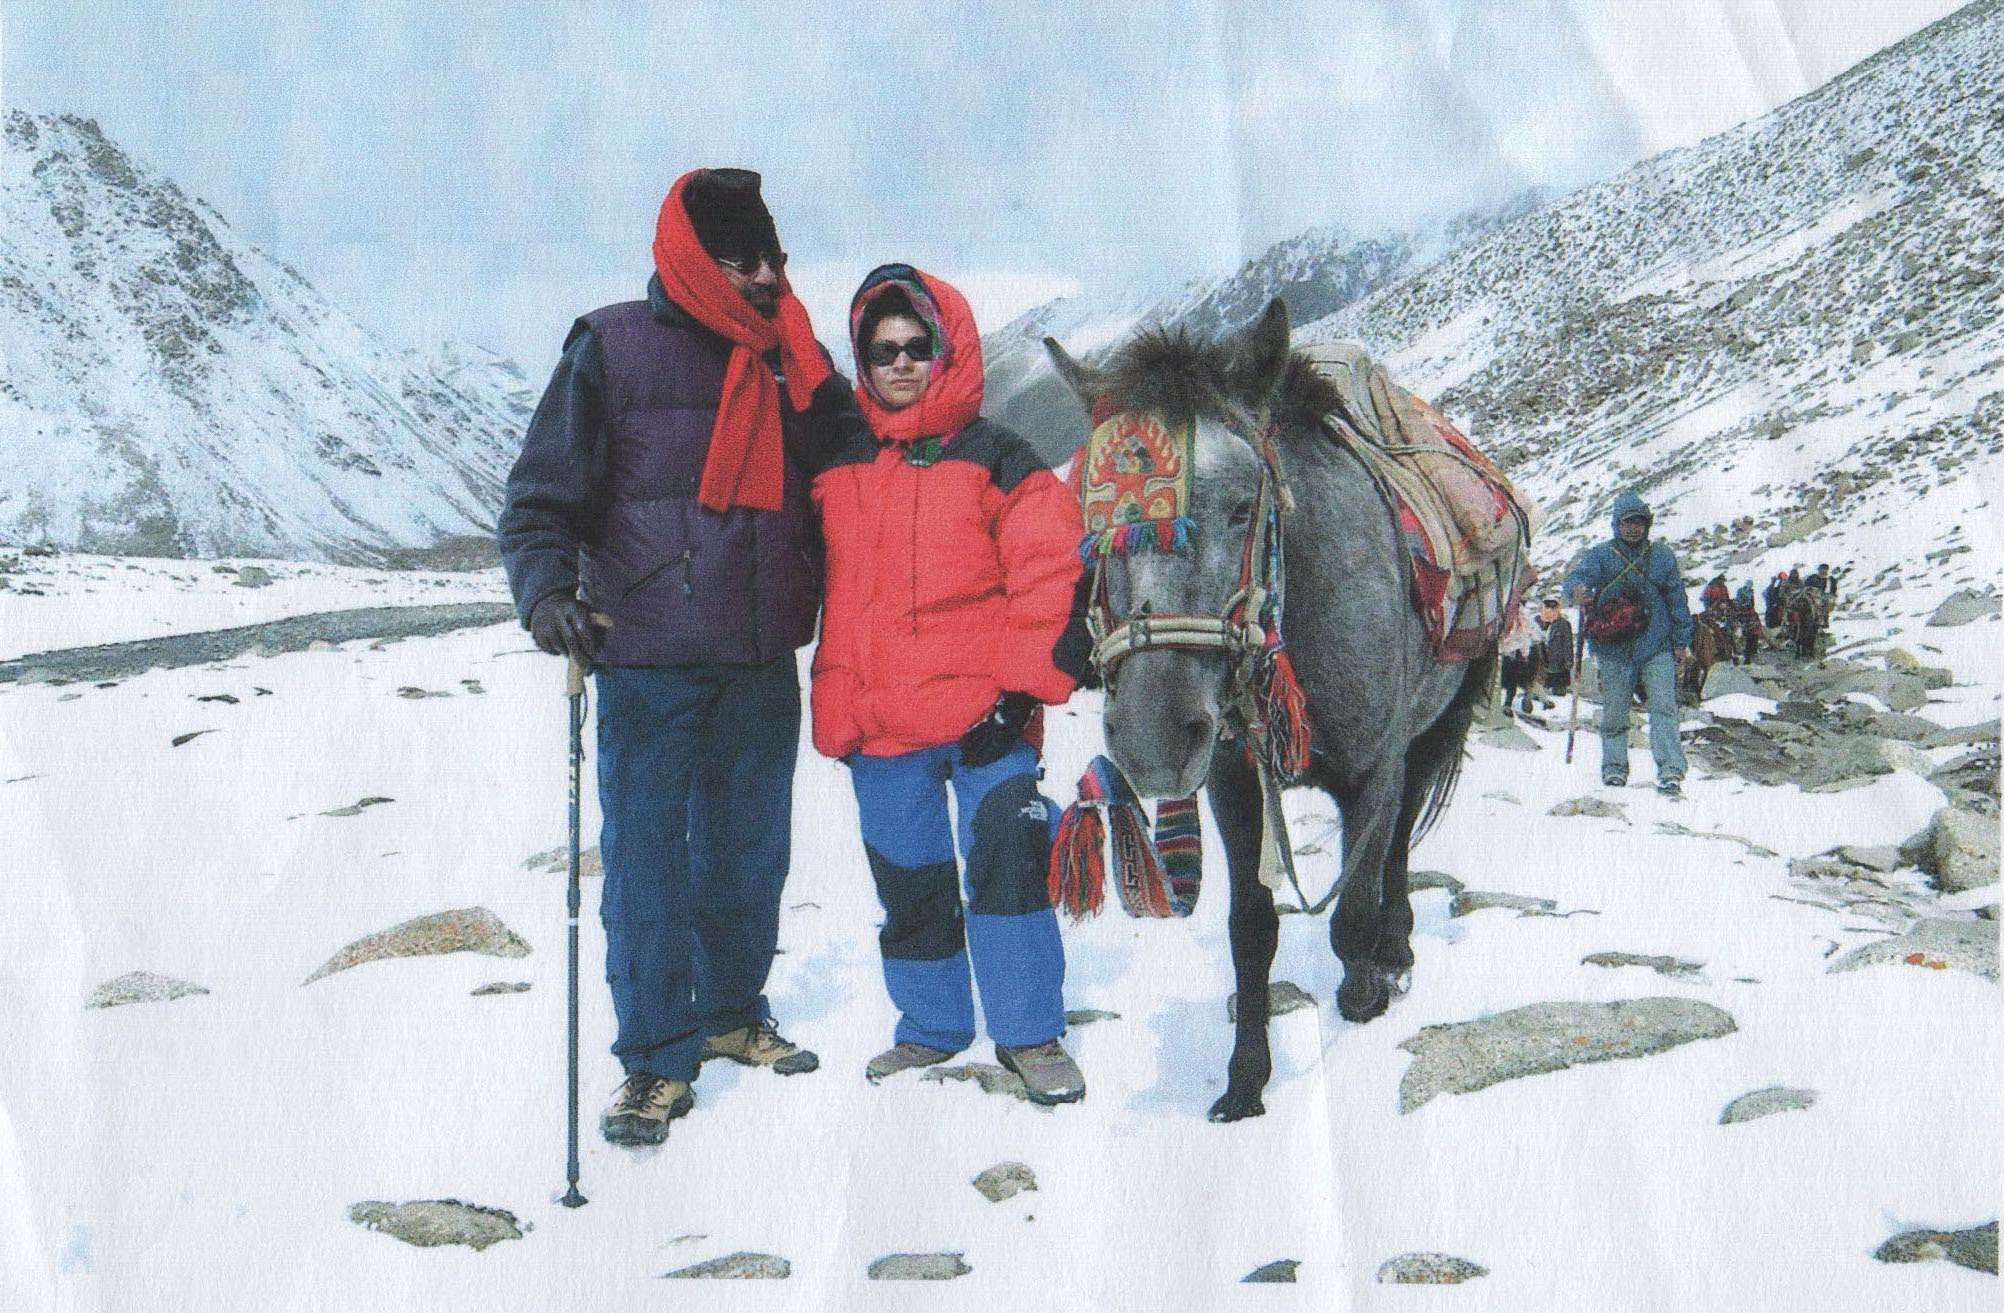 Anu and Iqbal Malhotra, Kailash Parikarma, Tibet, 2002